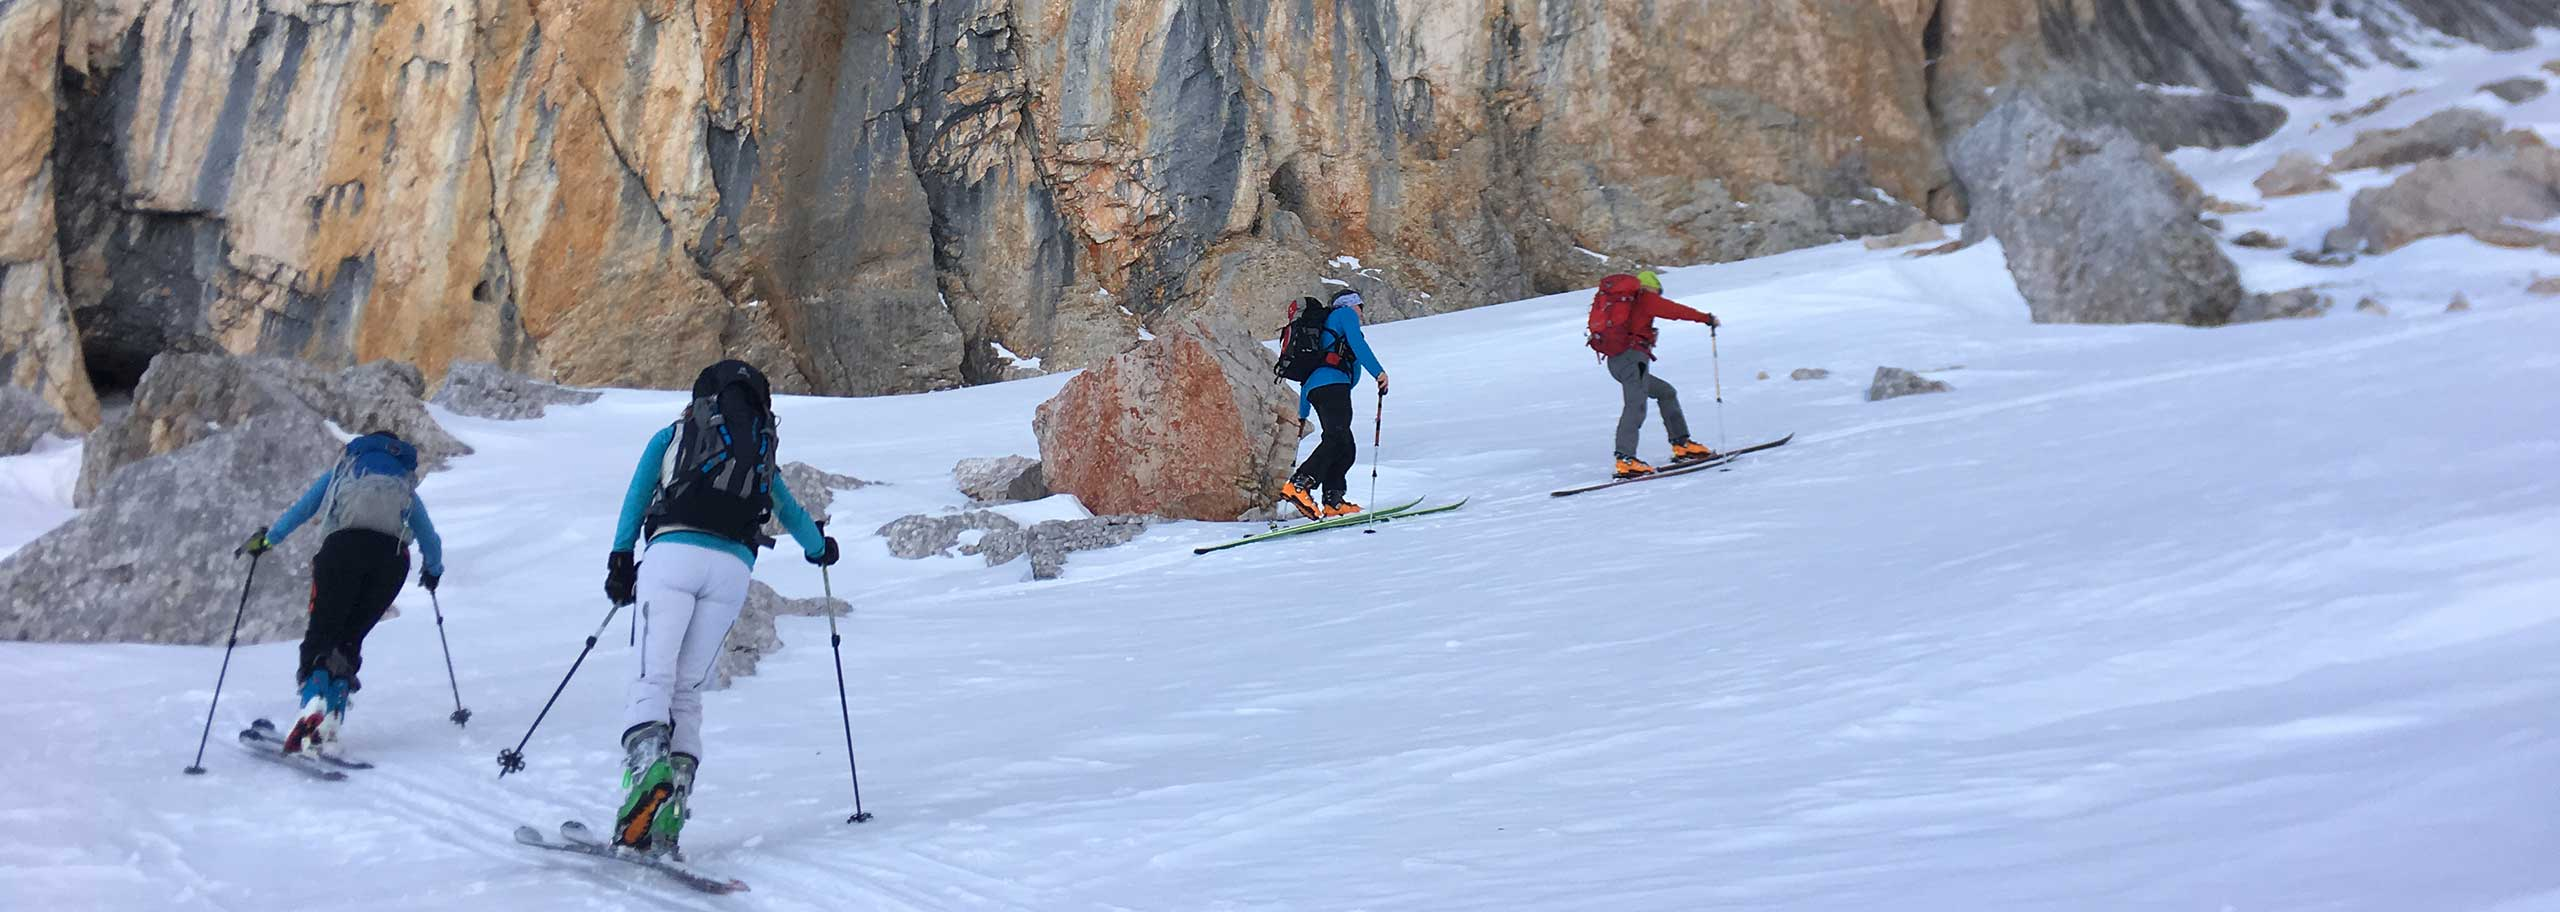 Ski Mountaineering with a Mountain Guide in San Martino di Castrozza